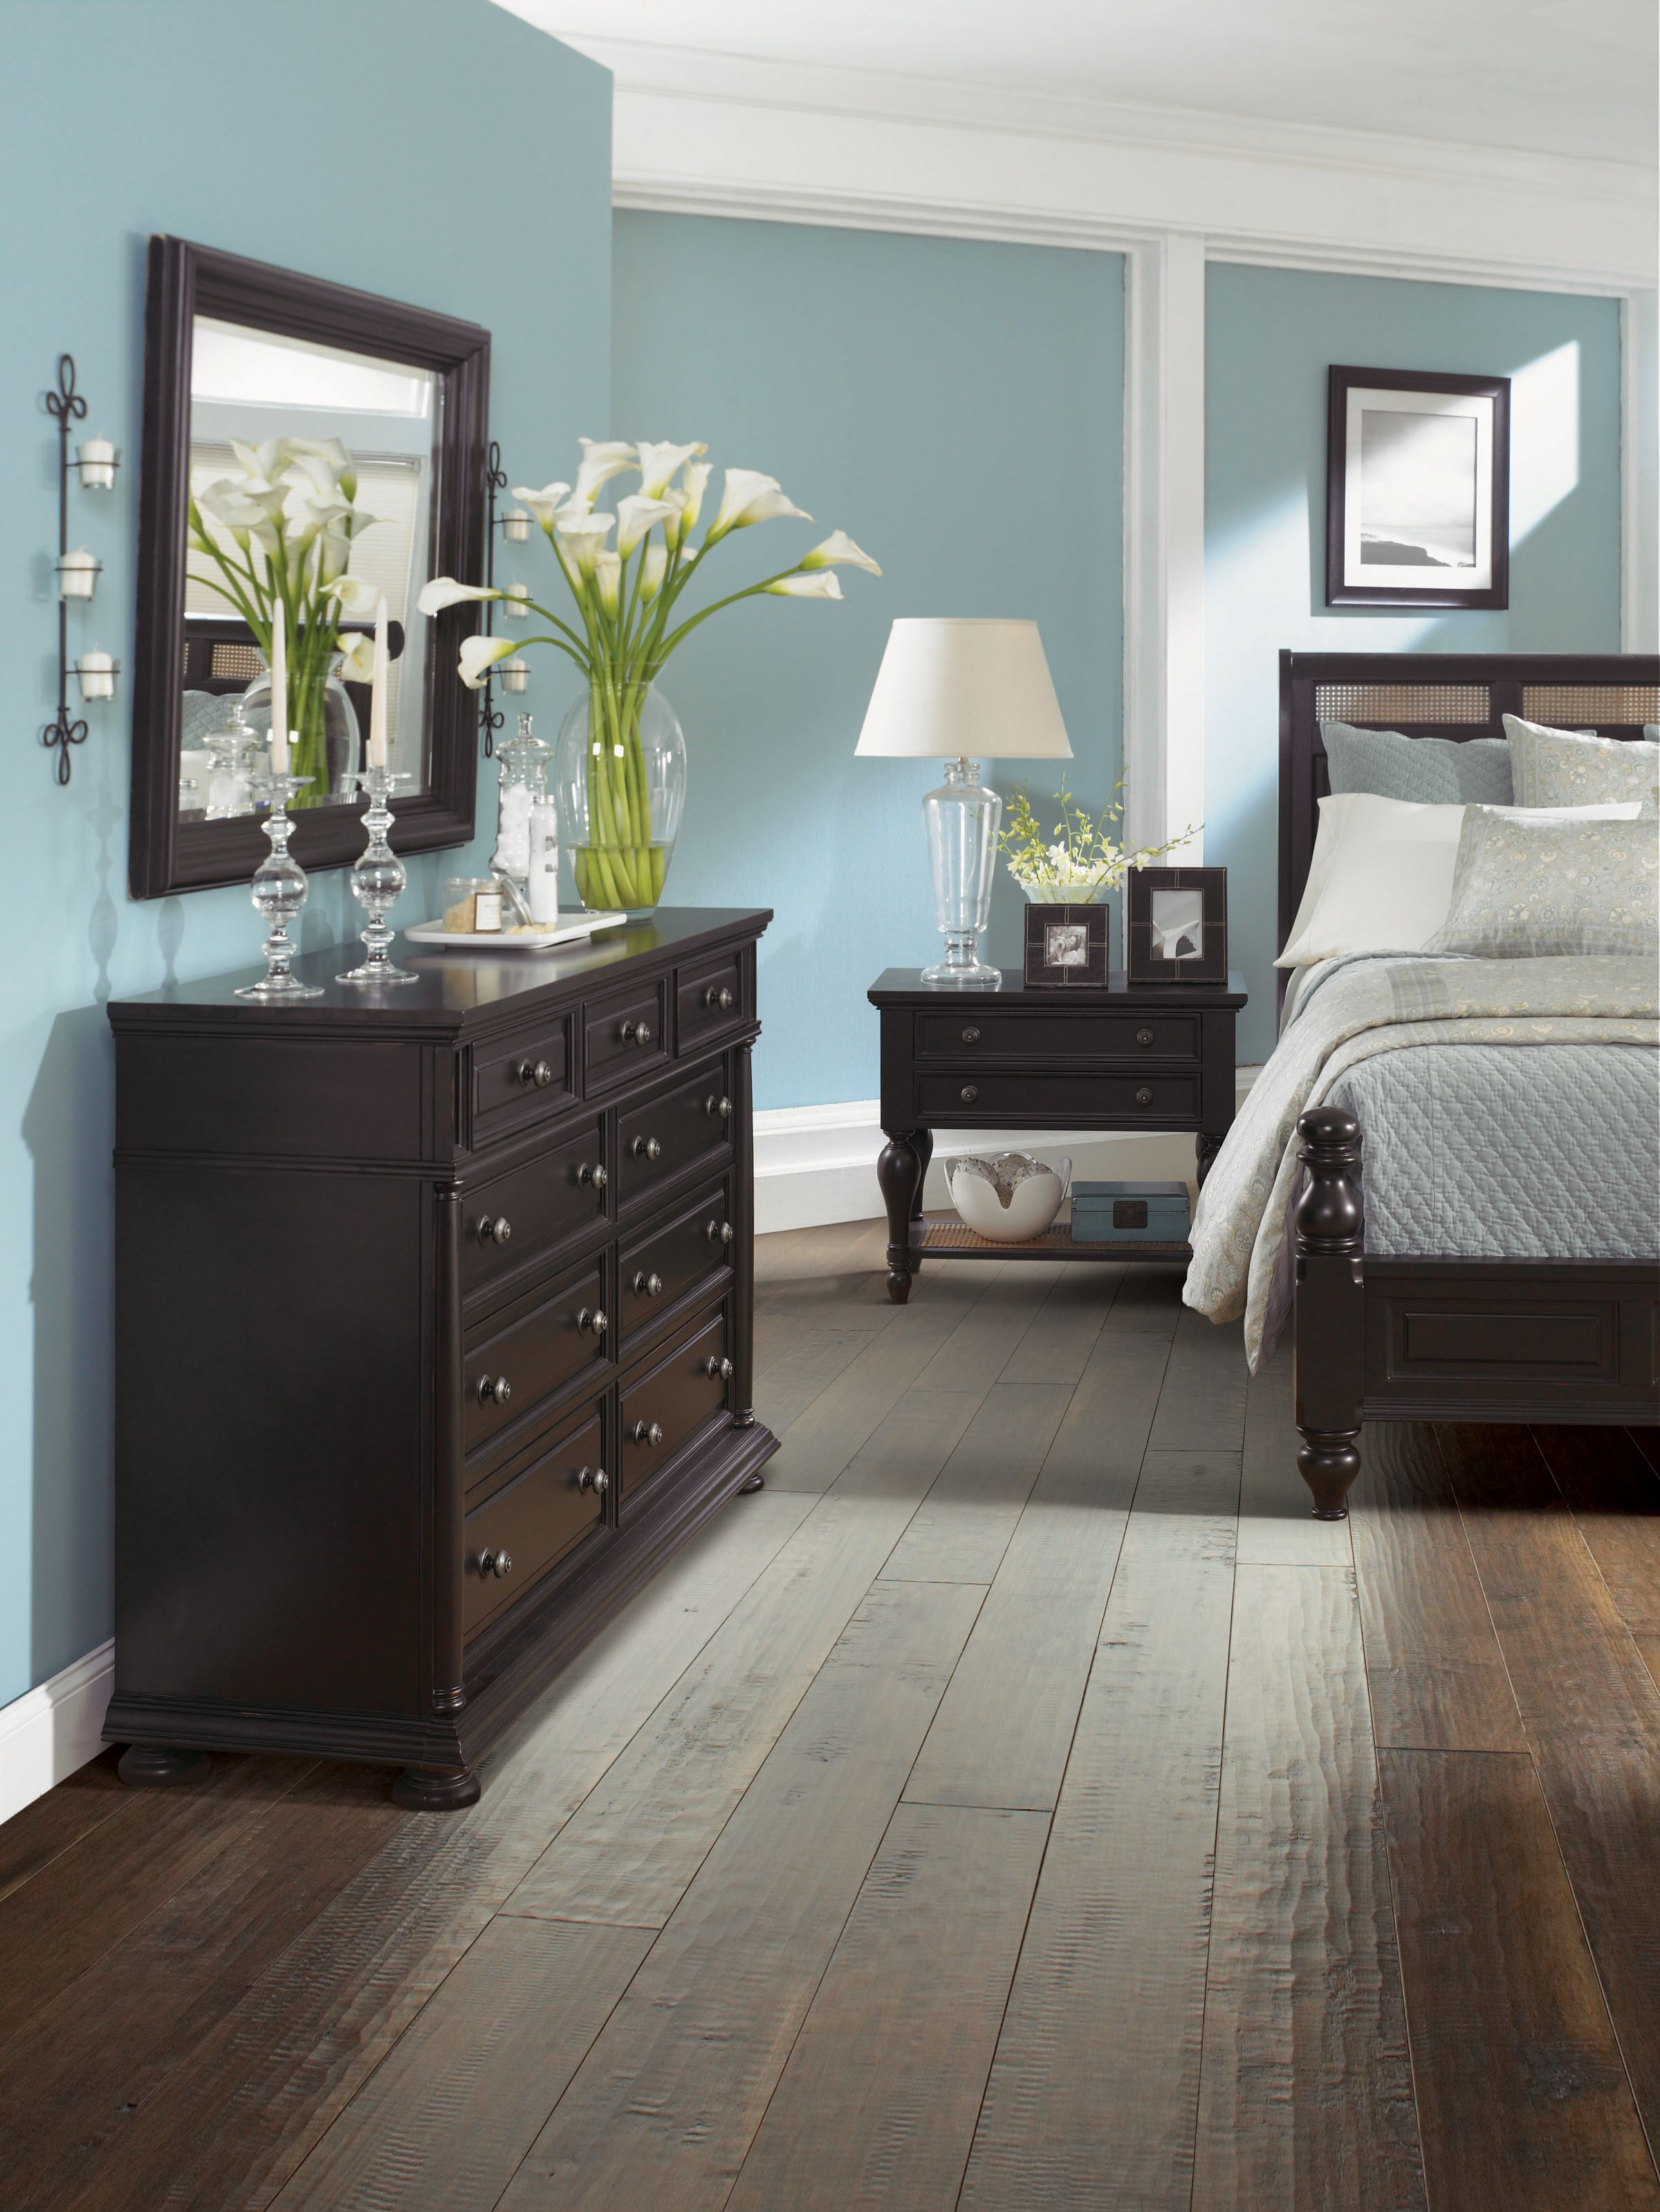 Paint For Bedrooms With Dark Furniture Habitacion Con Muebles Marra3n Oscuro O Negro En Color Celeste Y El